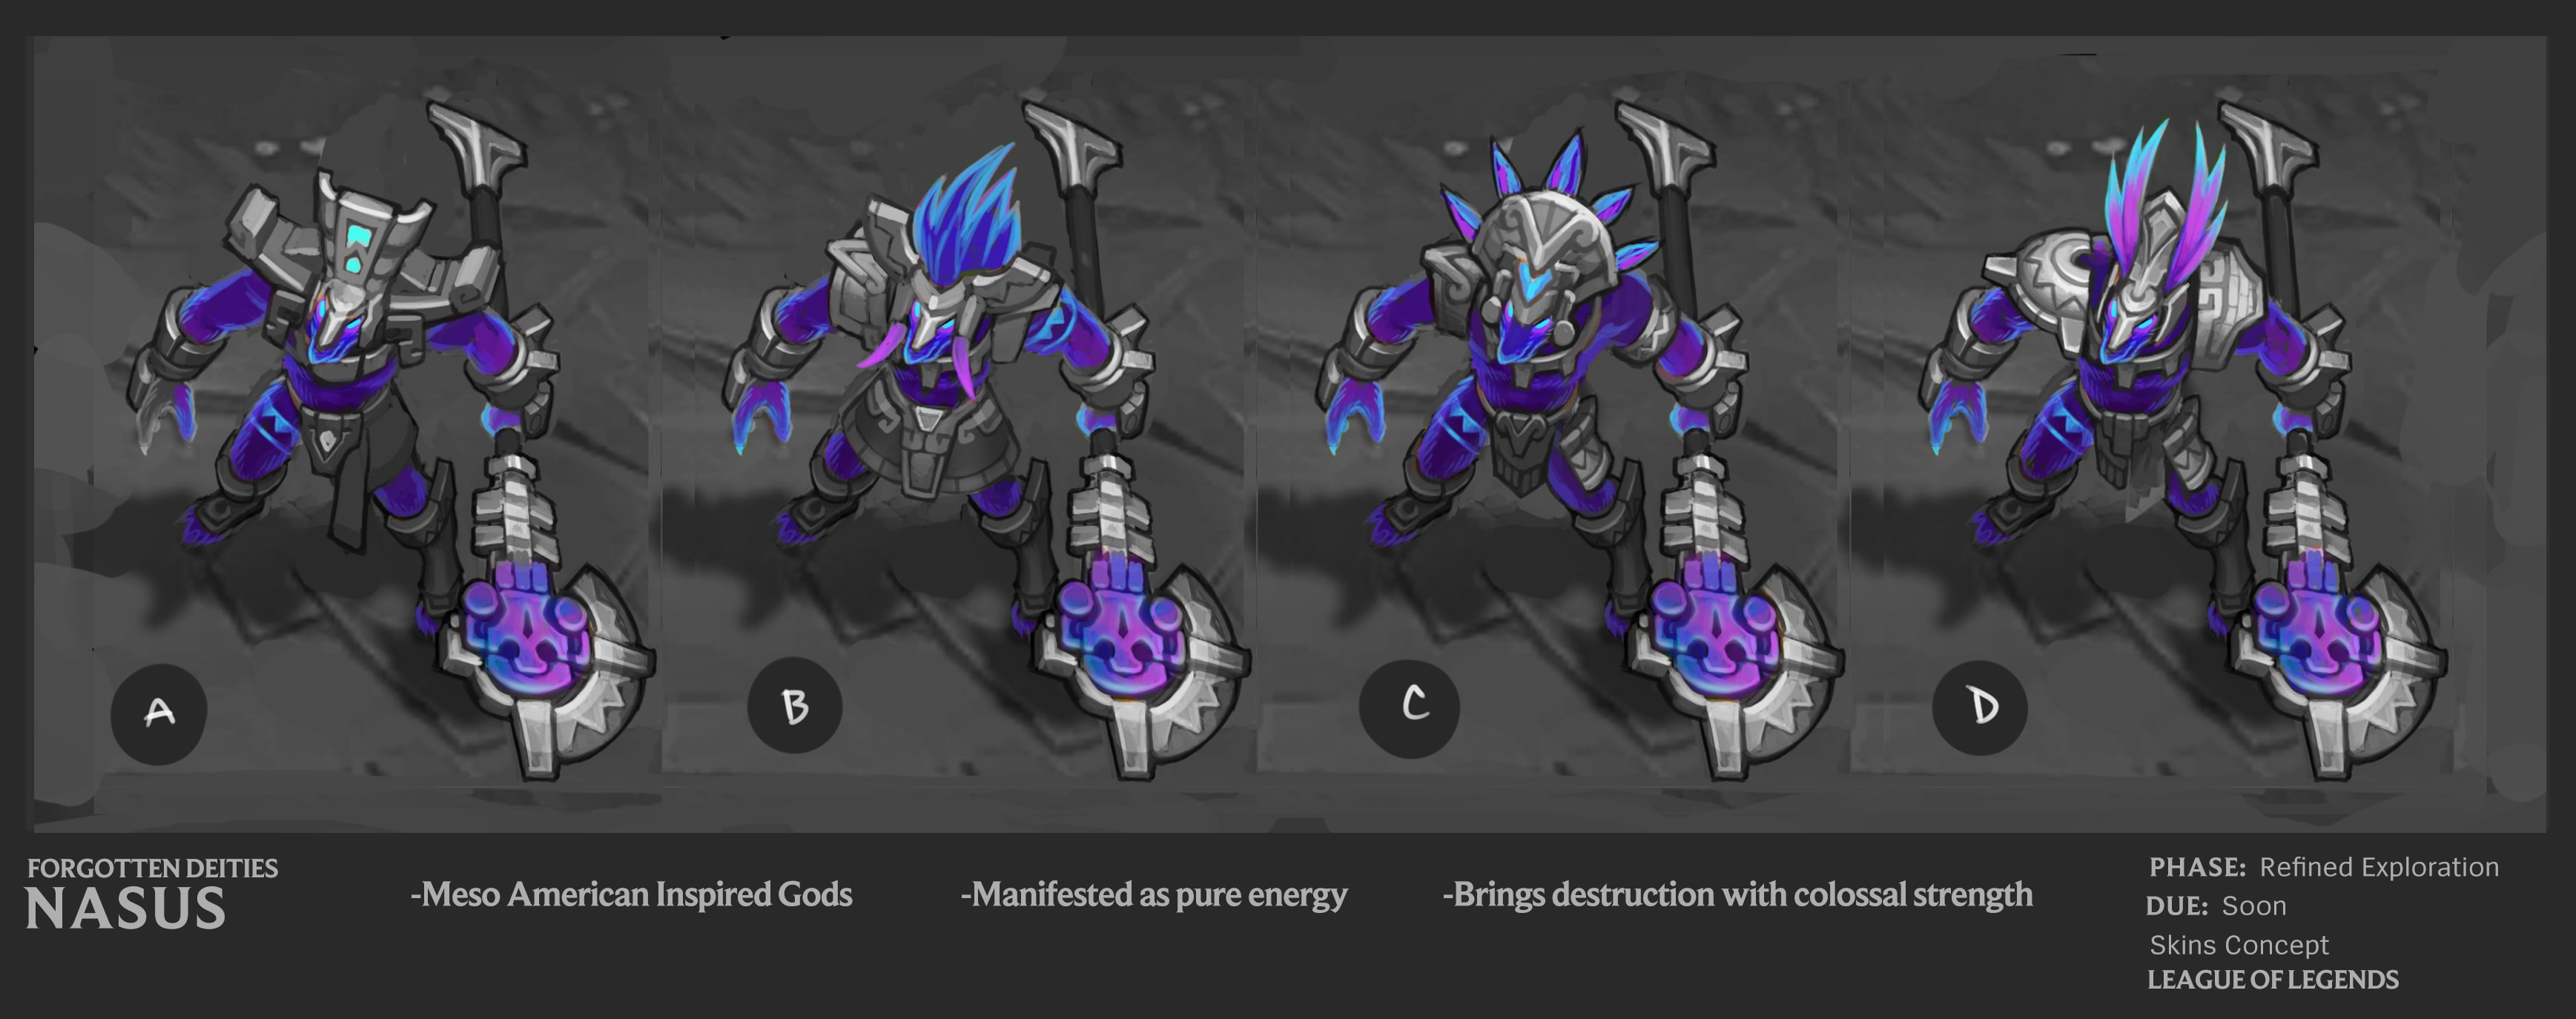 Product pillars for Worldbreakers